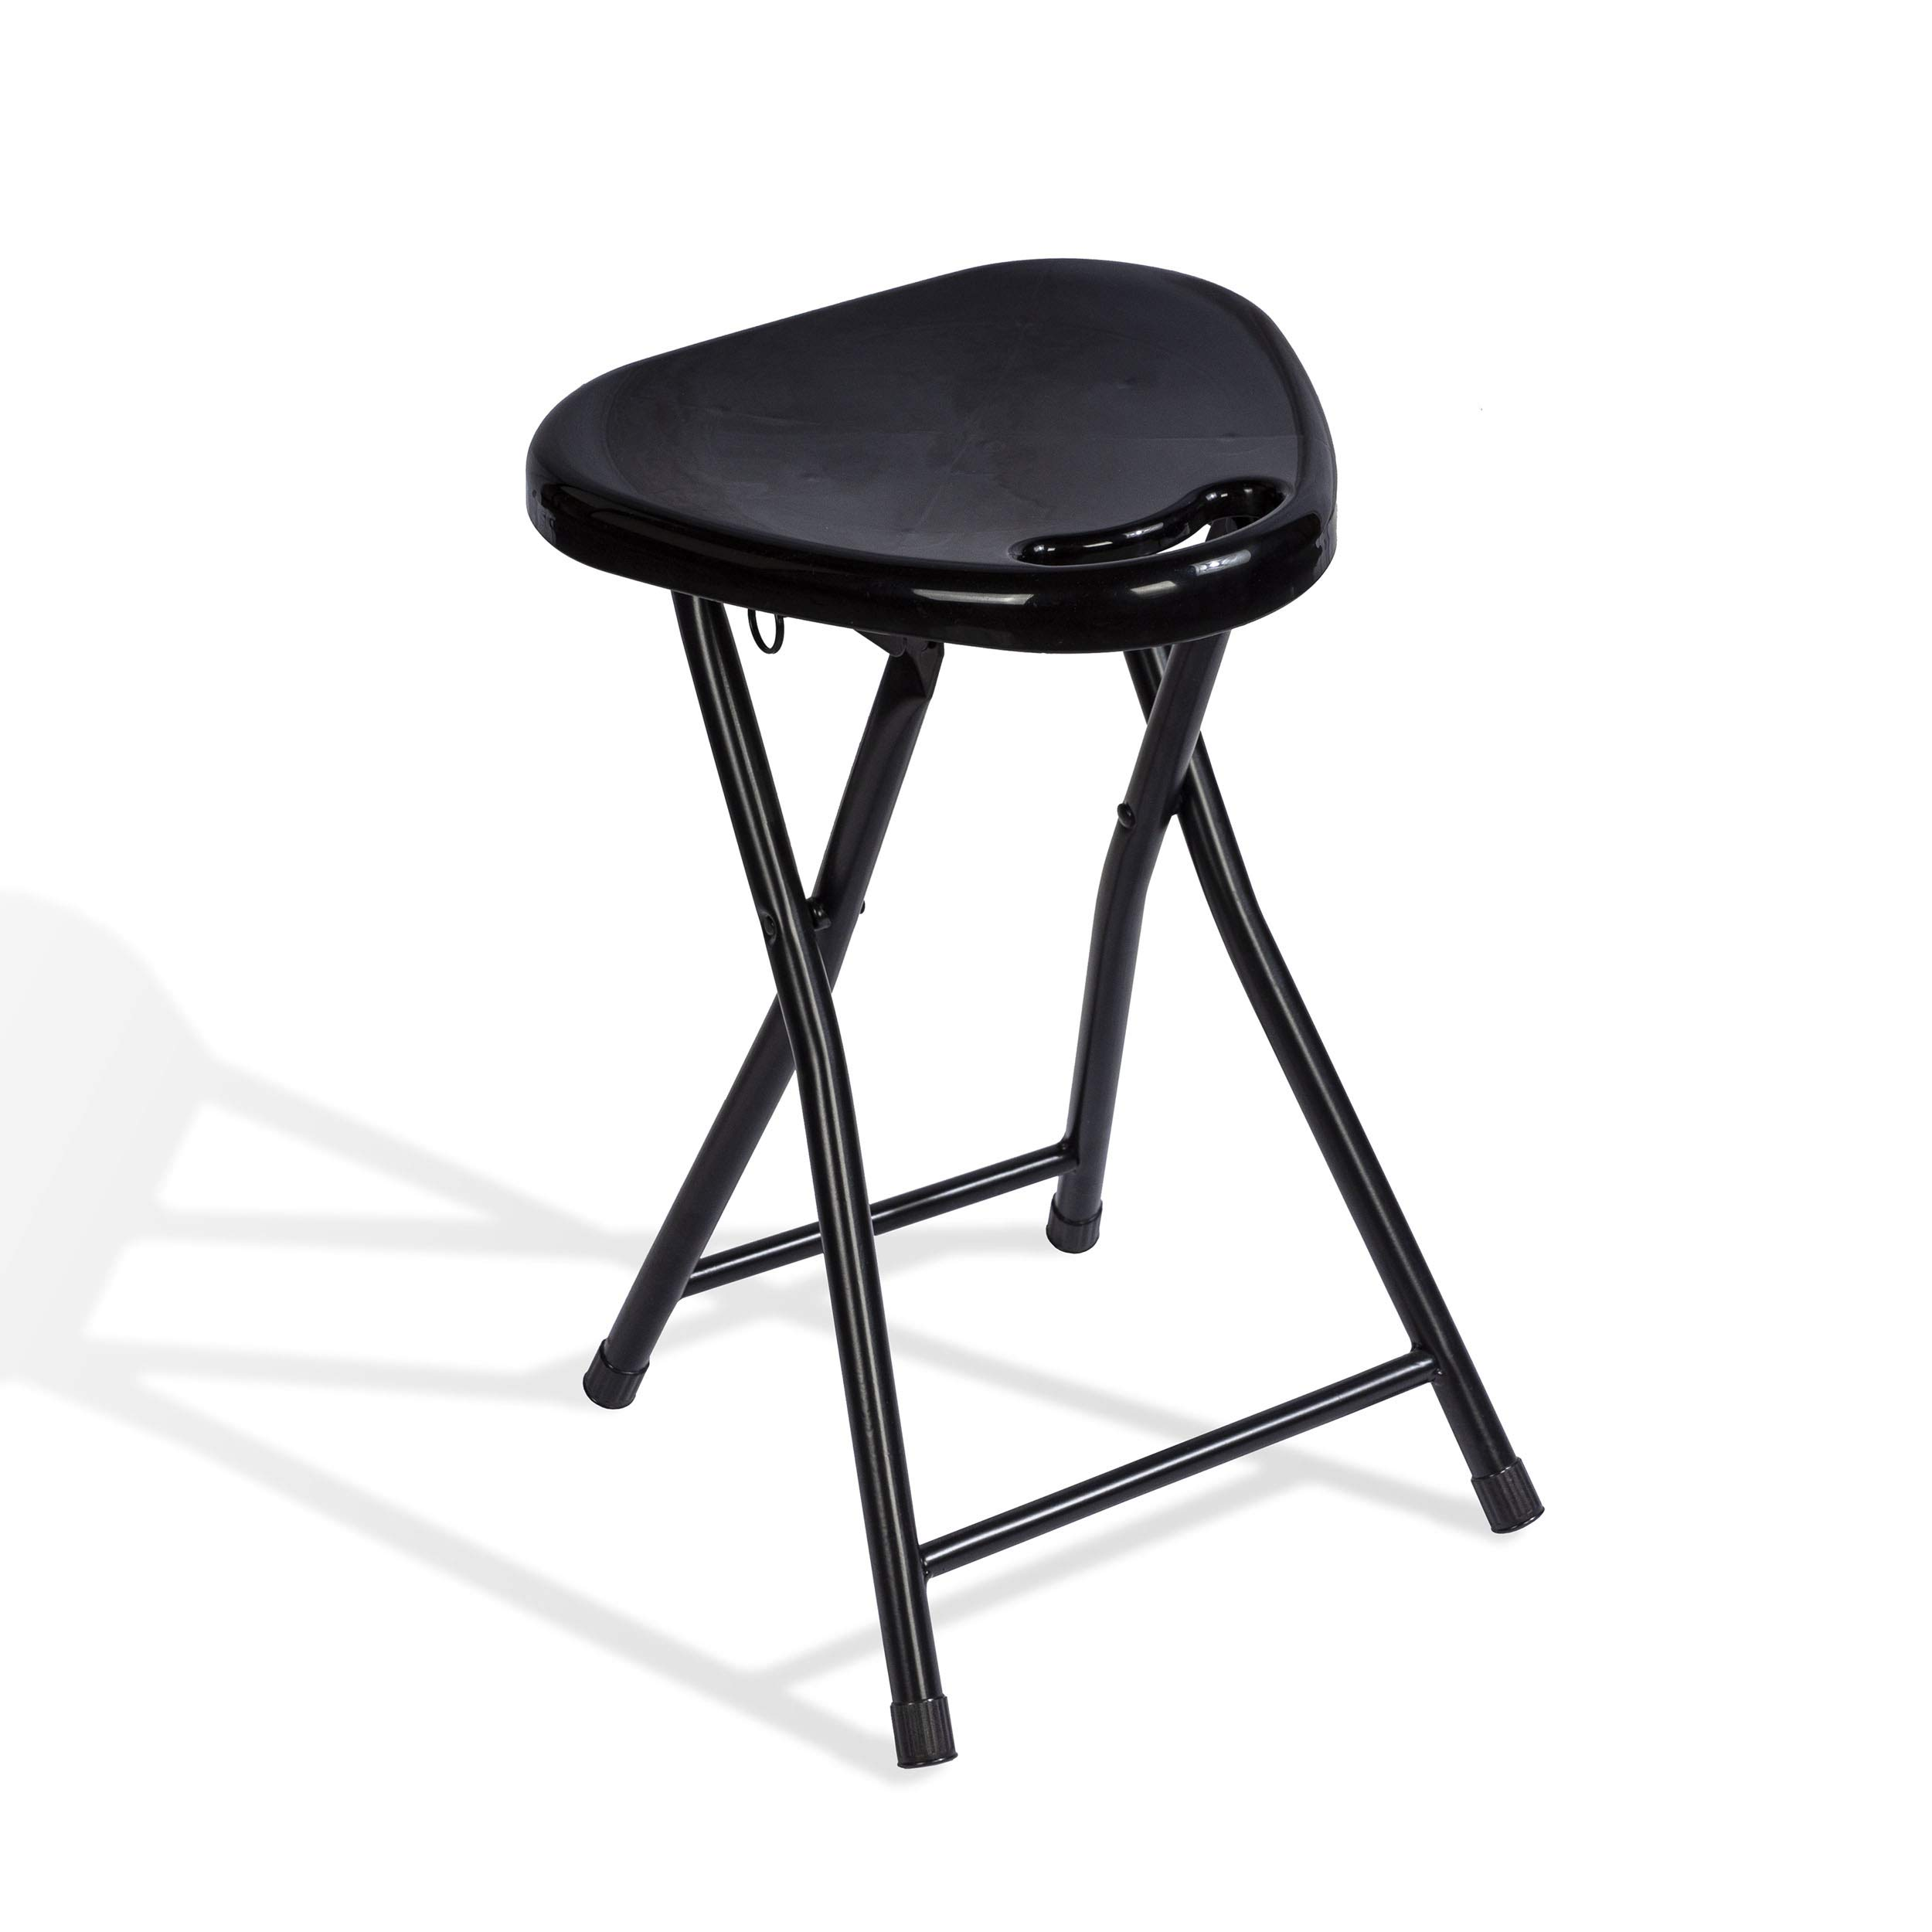 Atlantic 4 Pack Folding Stool with Handle, Black by Atlantic